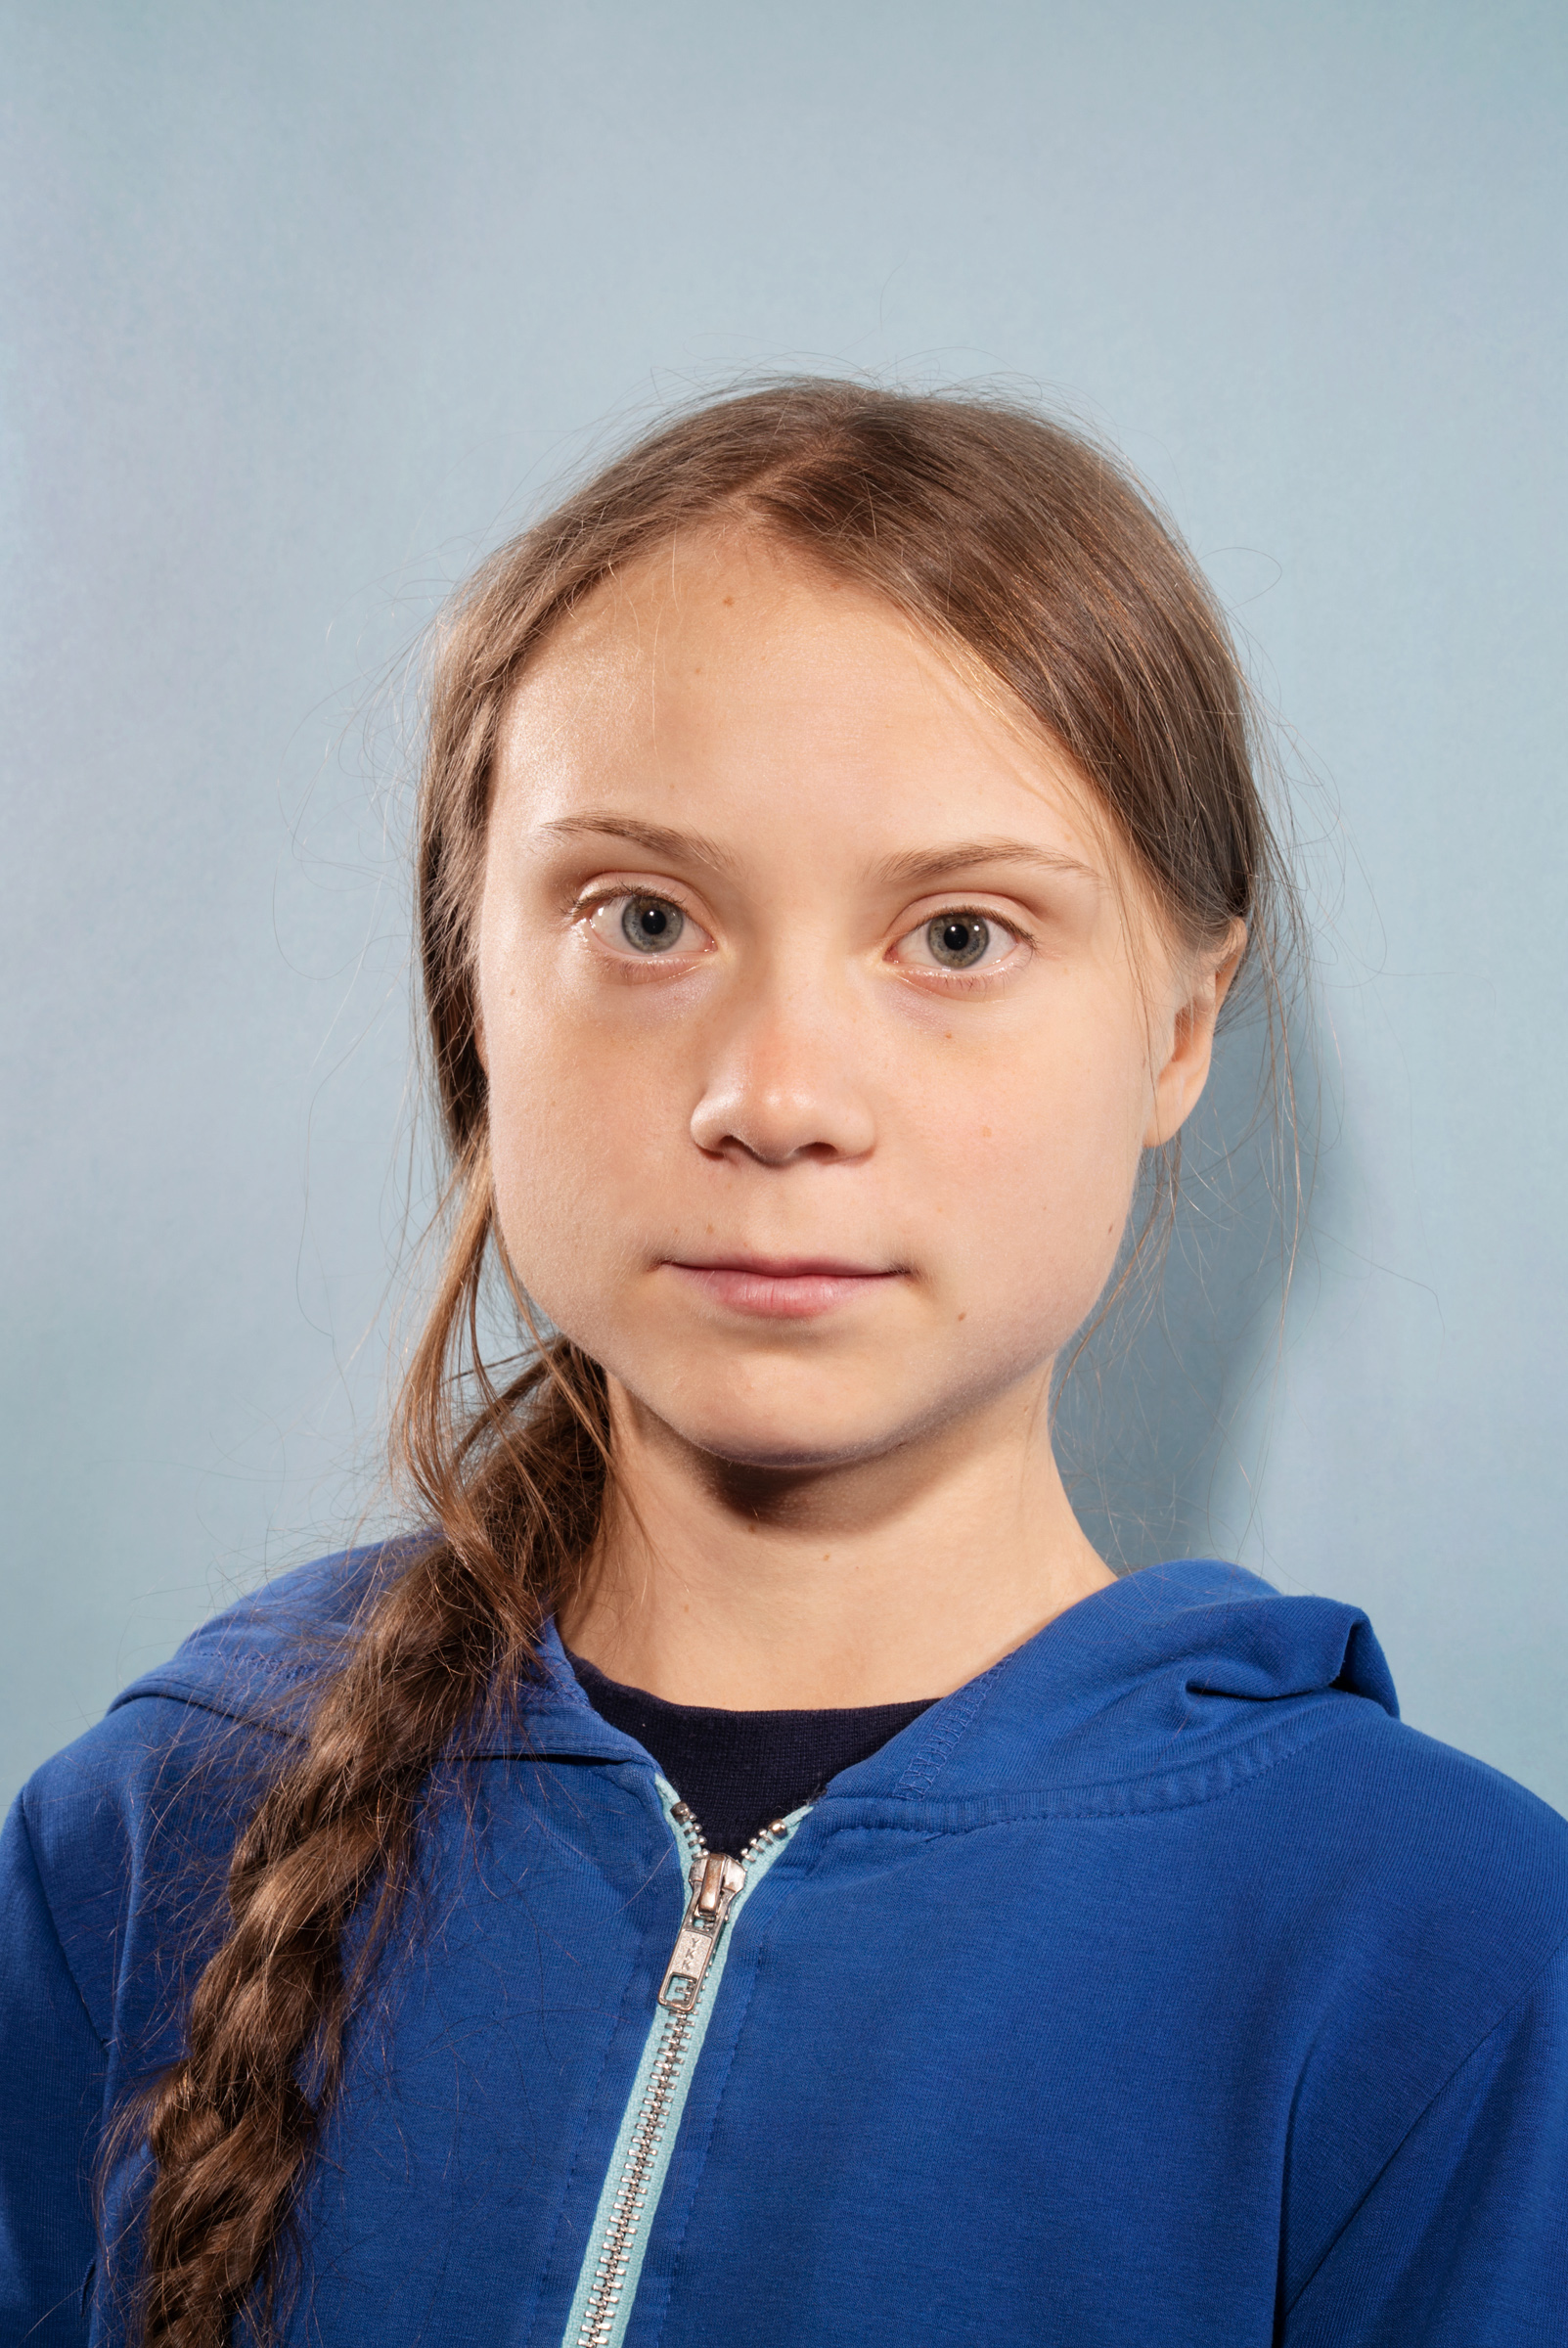 Greta Thunberg photographed in Hampton, Virginia, before sailing back to Europe on November 12, 2019.